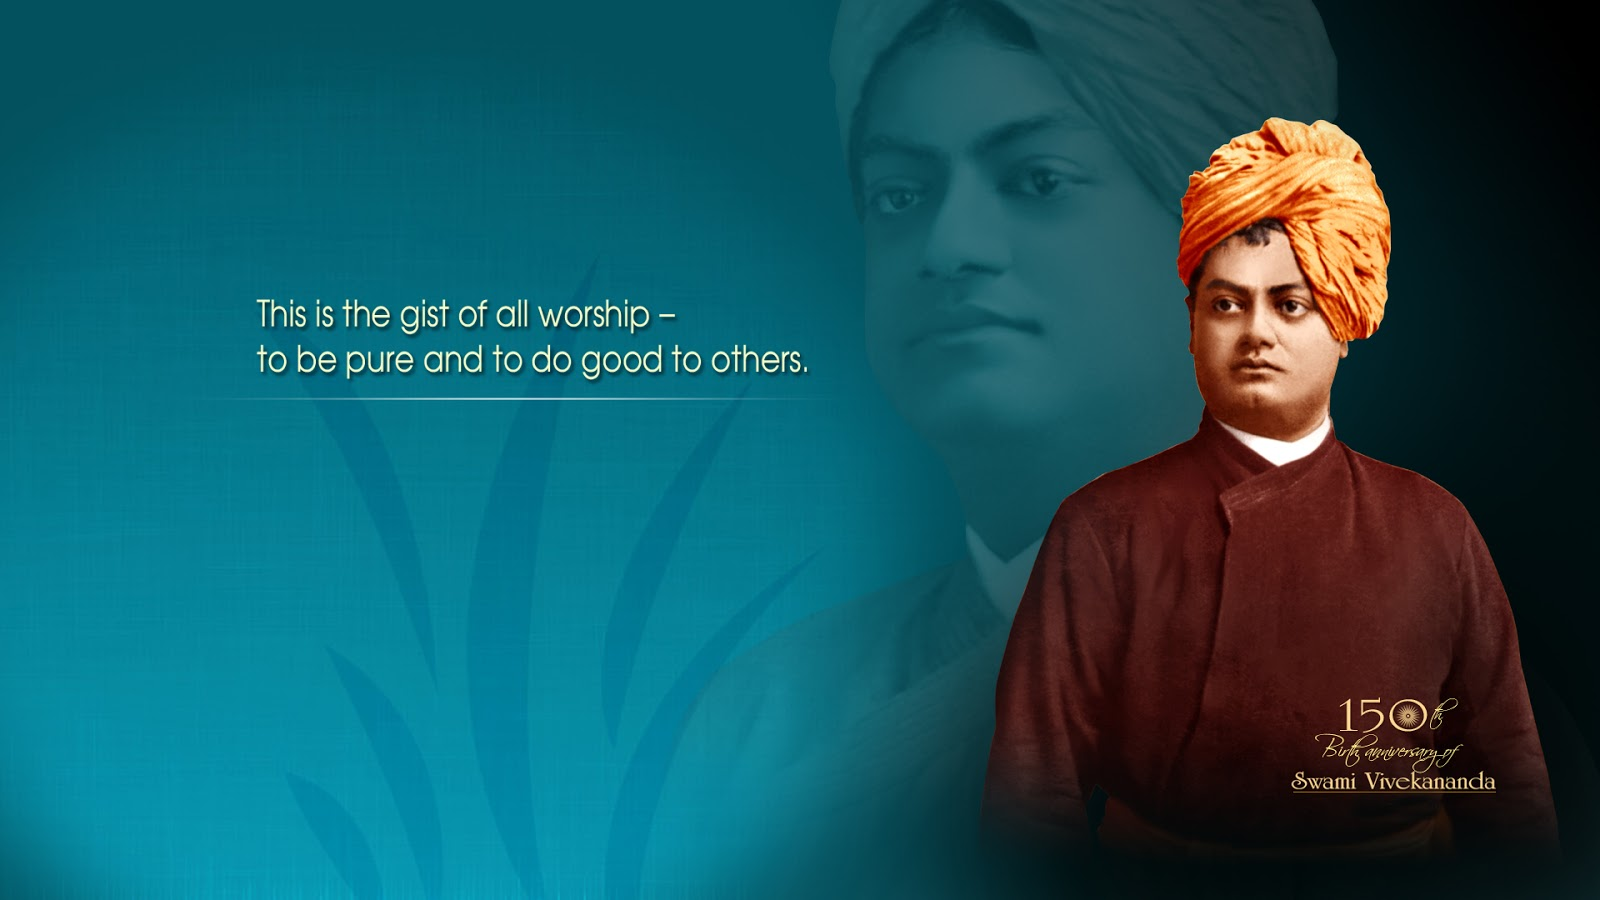 Vivekananda Telugu Quotes Wallpapers Swami Vivekananda High Resolution Best Size Hd Wallpapers